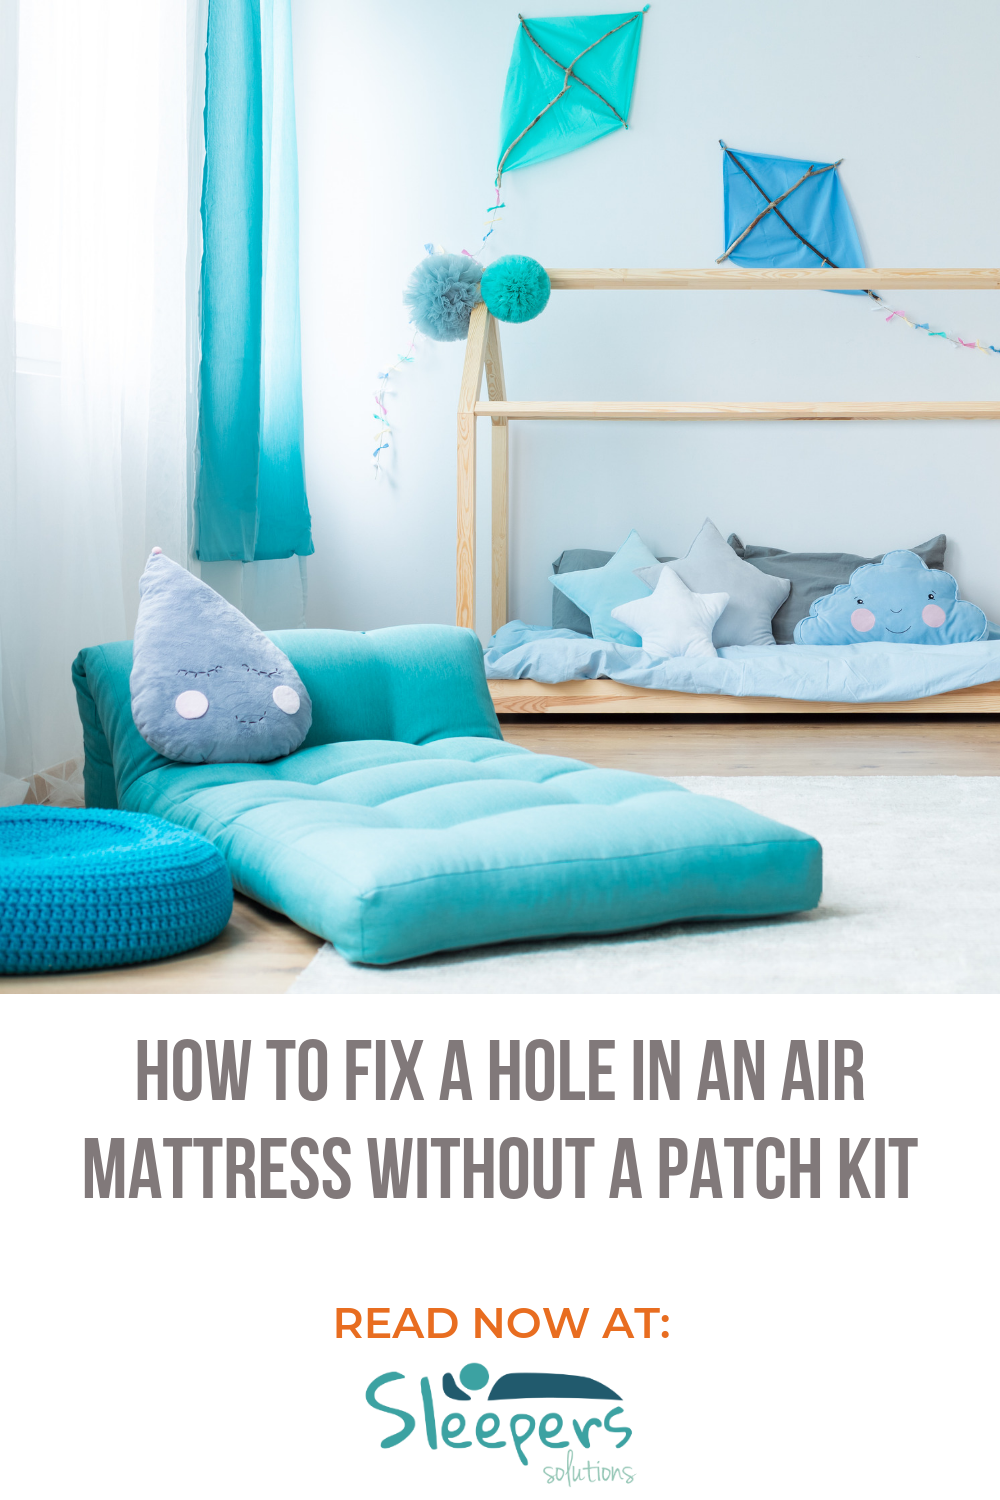 How to Fix a Hole in an Air Mattress Without a Patch Kit